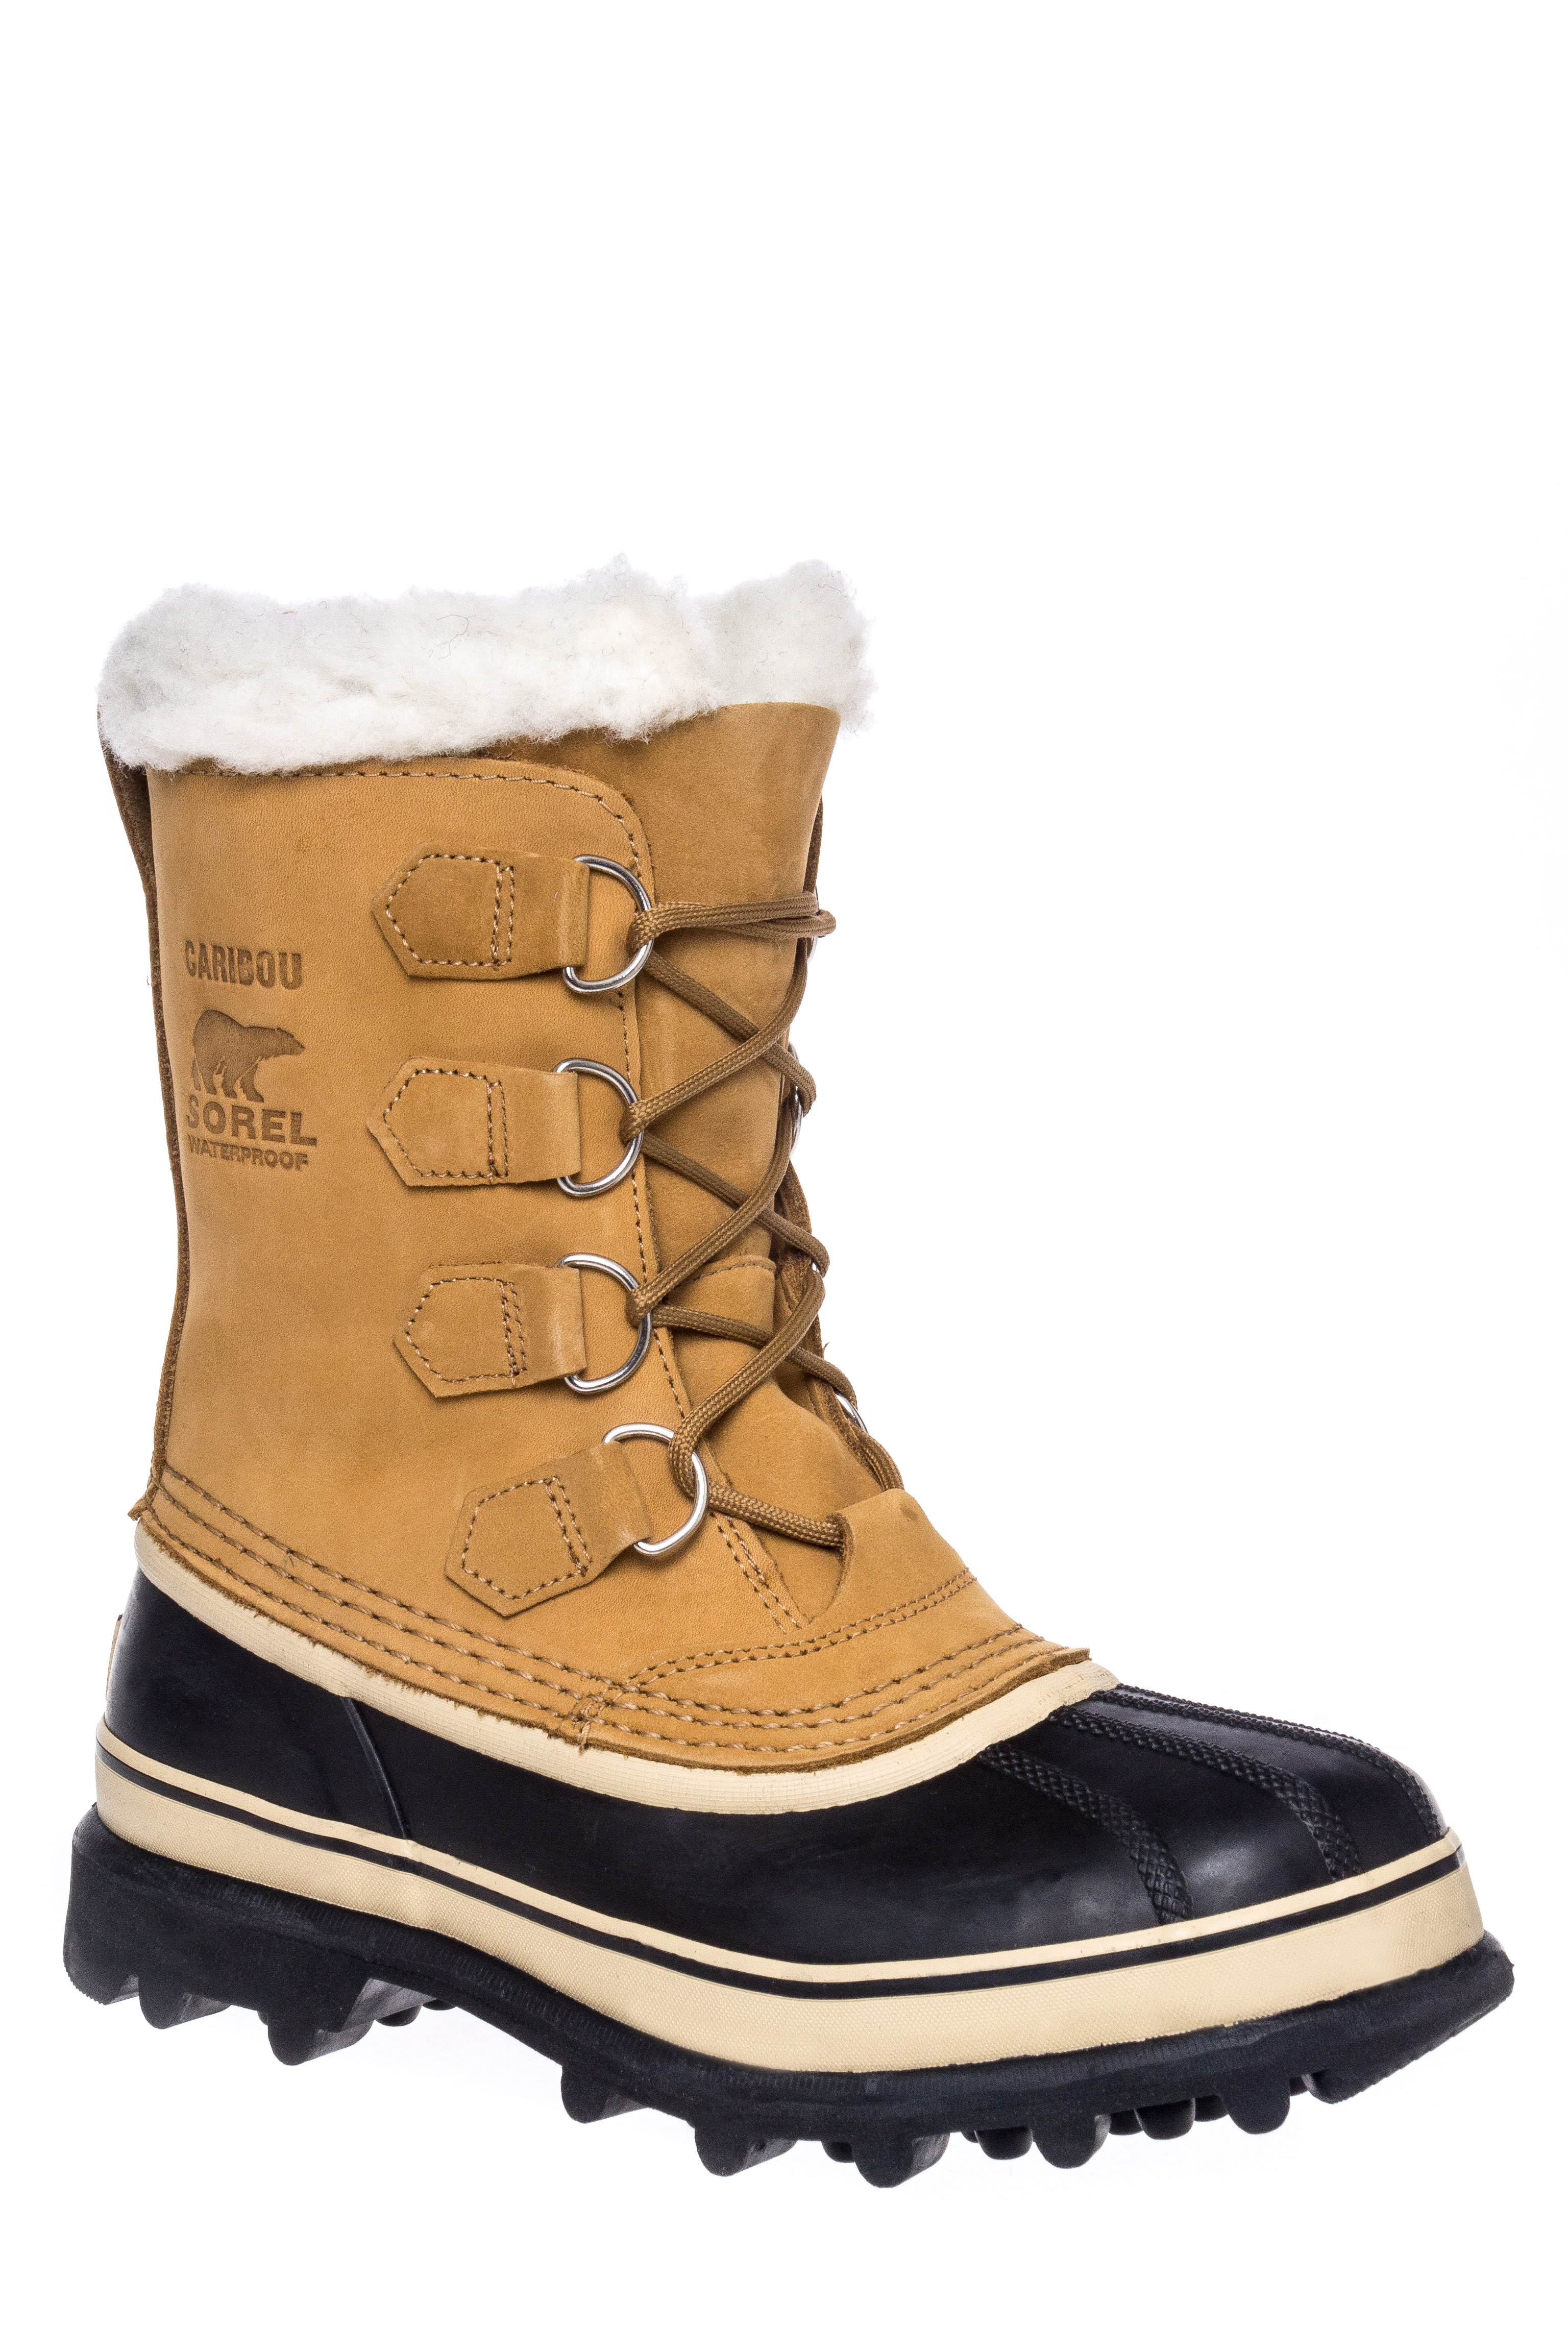 Sorel Caribou Lace-Up Waterproof Mid Calf Boots - Buff